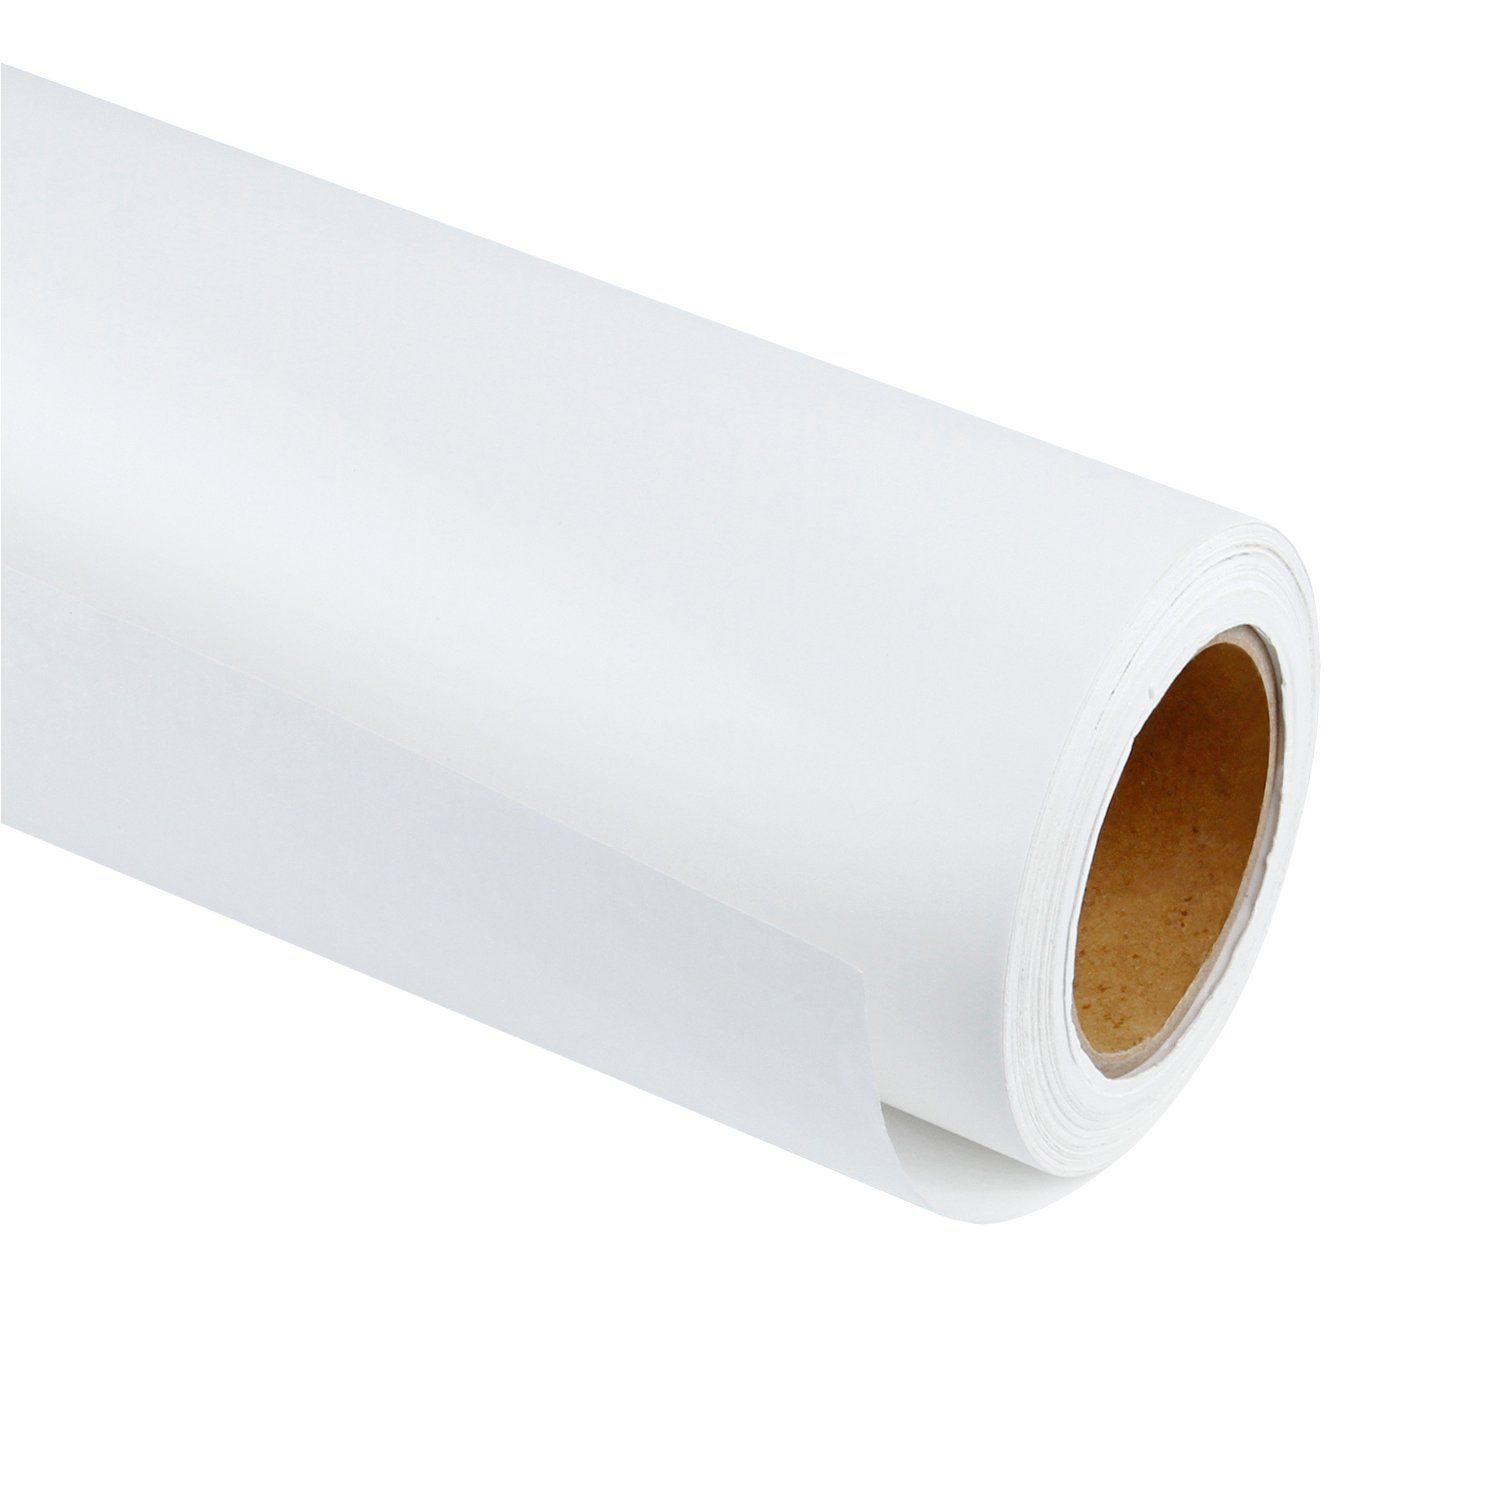 RUSPEPA White Kraft Paper Roll - 48 inch x 100 Feet - Recycled Paper Perfect for Gift Wrapping, Craft, Packing, Floor Covering, Dunnage, Parcel, Table Runner